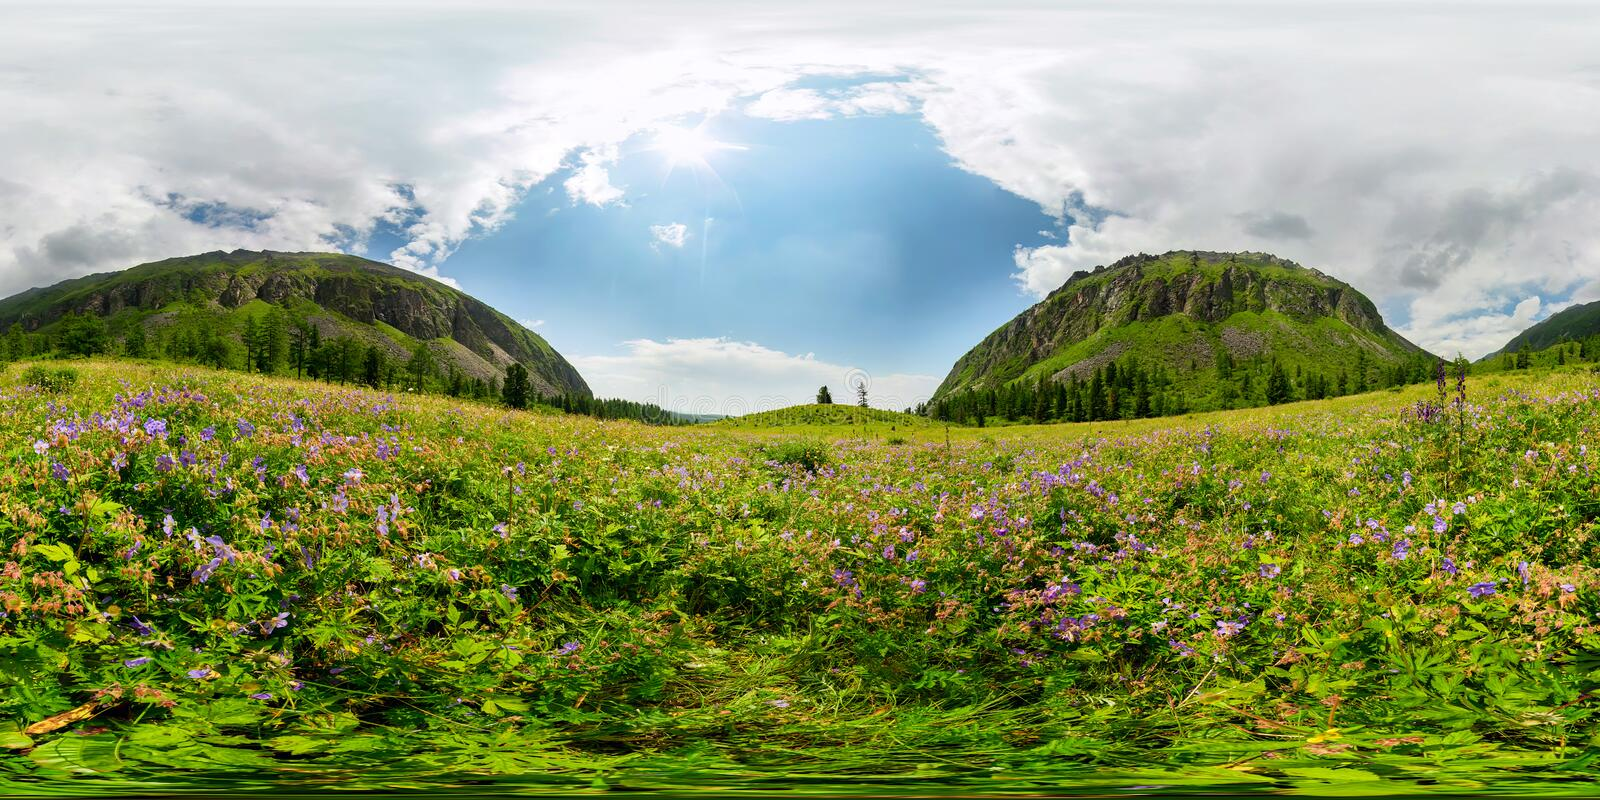 Field of blue flowers in the mountains on a cloudy day. Spherical 360-degree vr panorama royalty free stock image